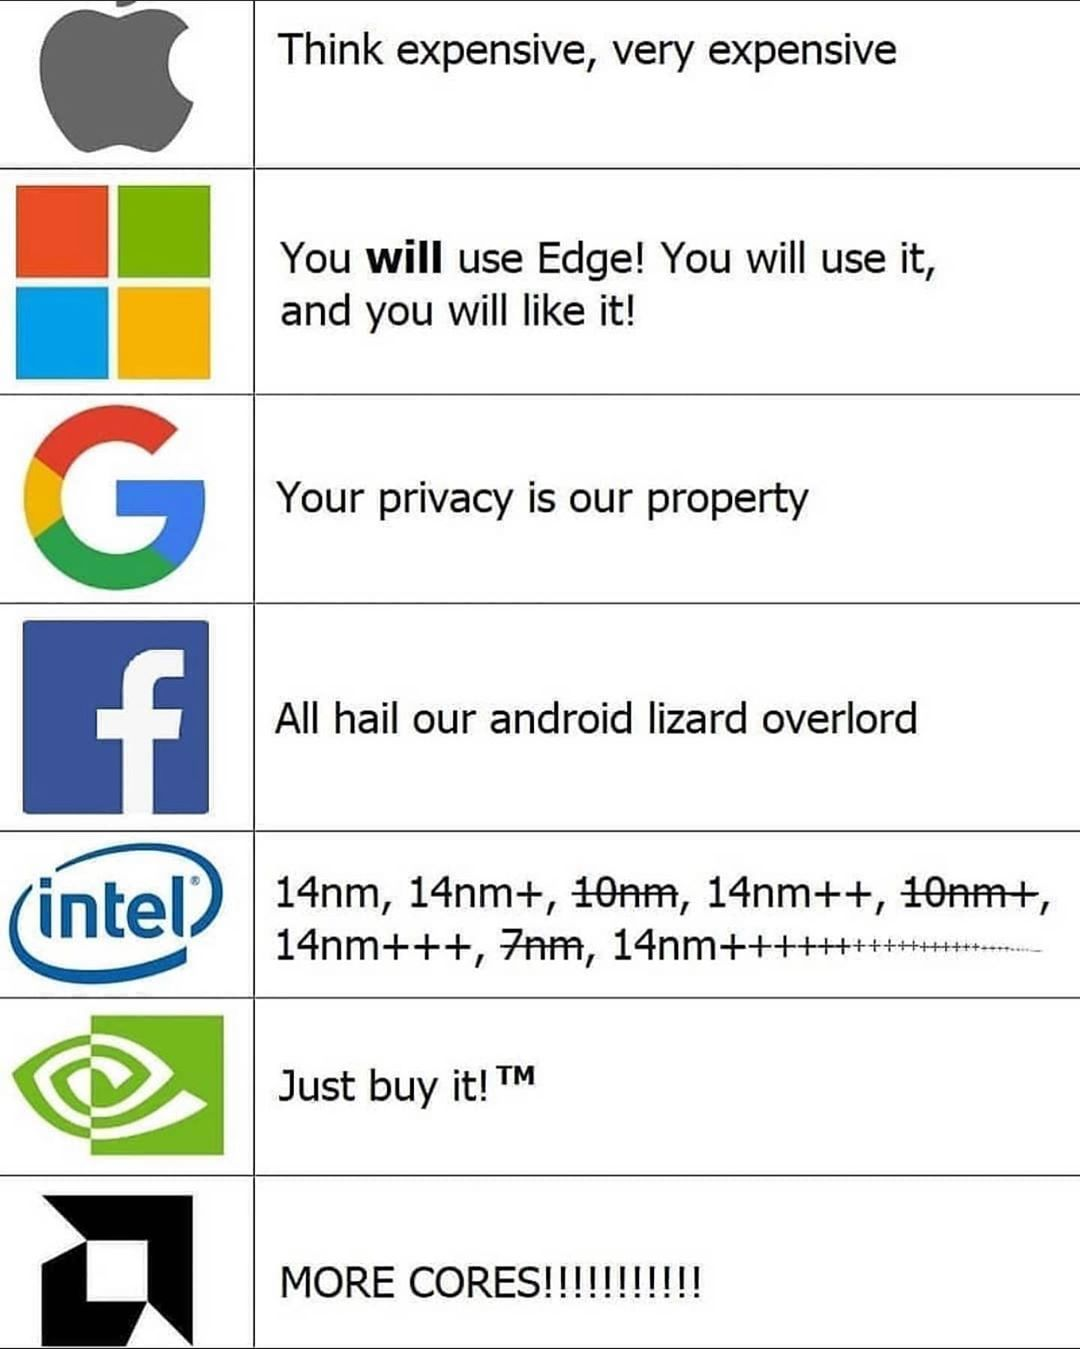 Leading technology companies - a simple summary to understand